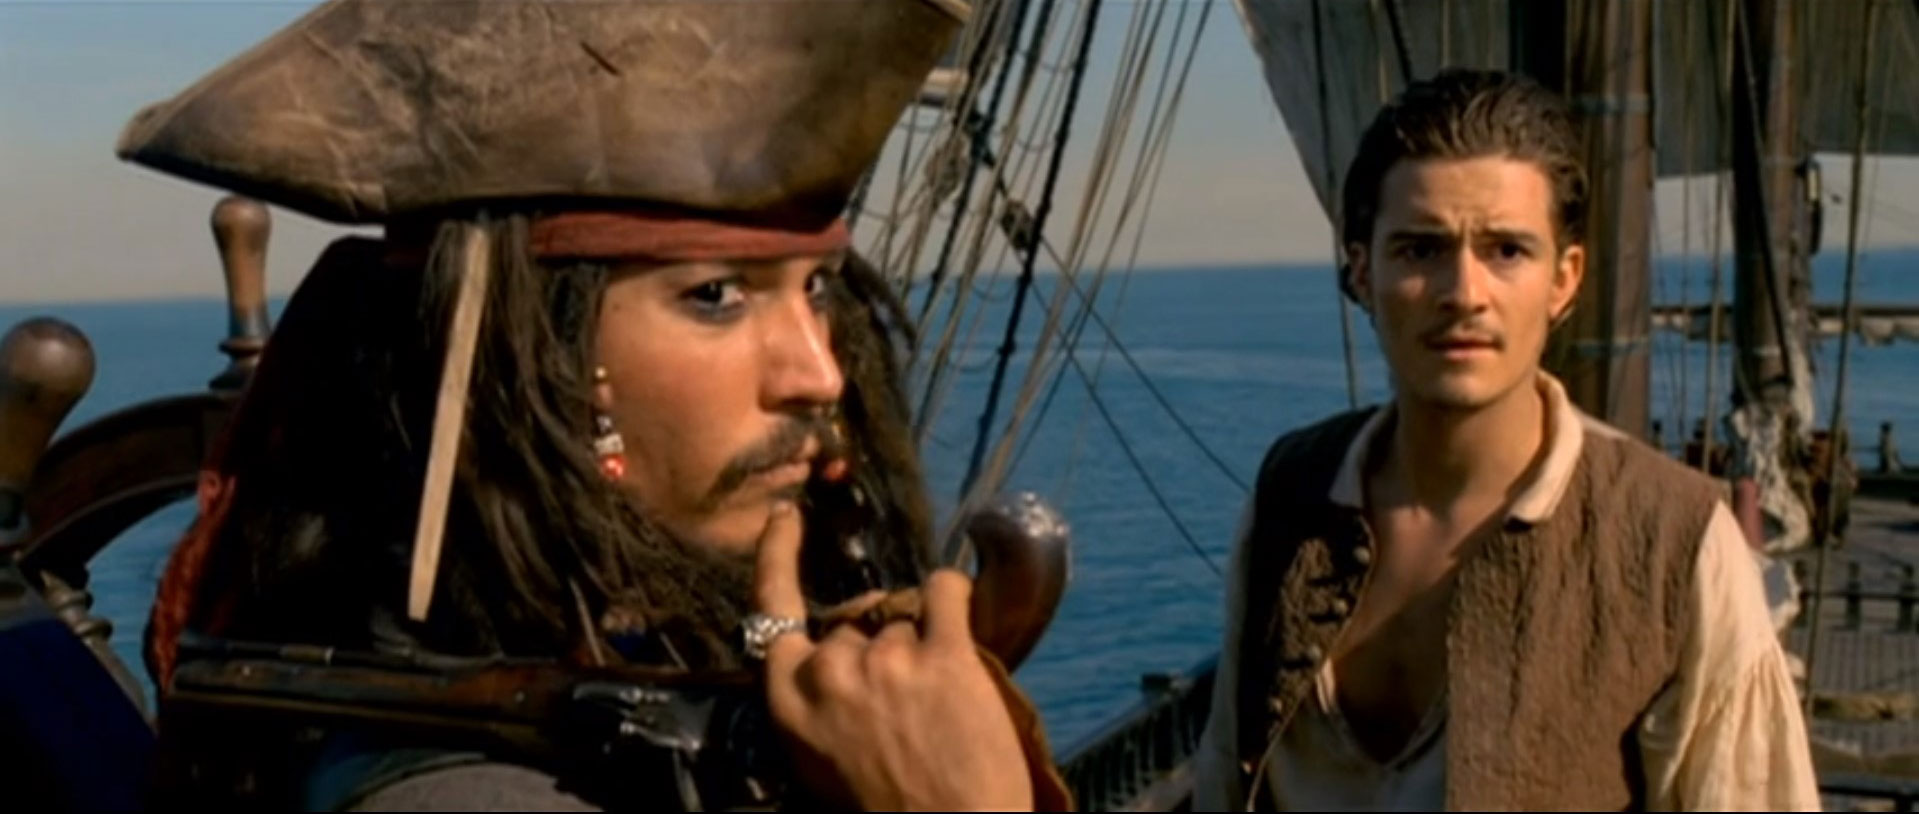 Pirates Of The Caribbean The Curse Of The Black Pearl 2003 Download